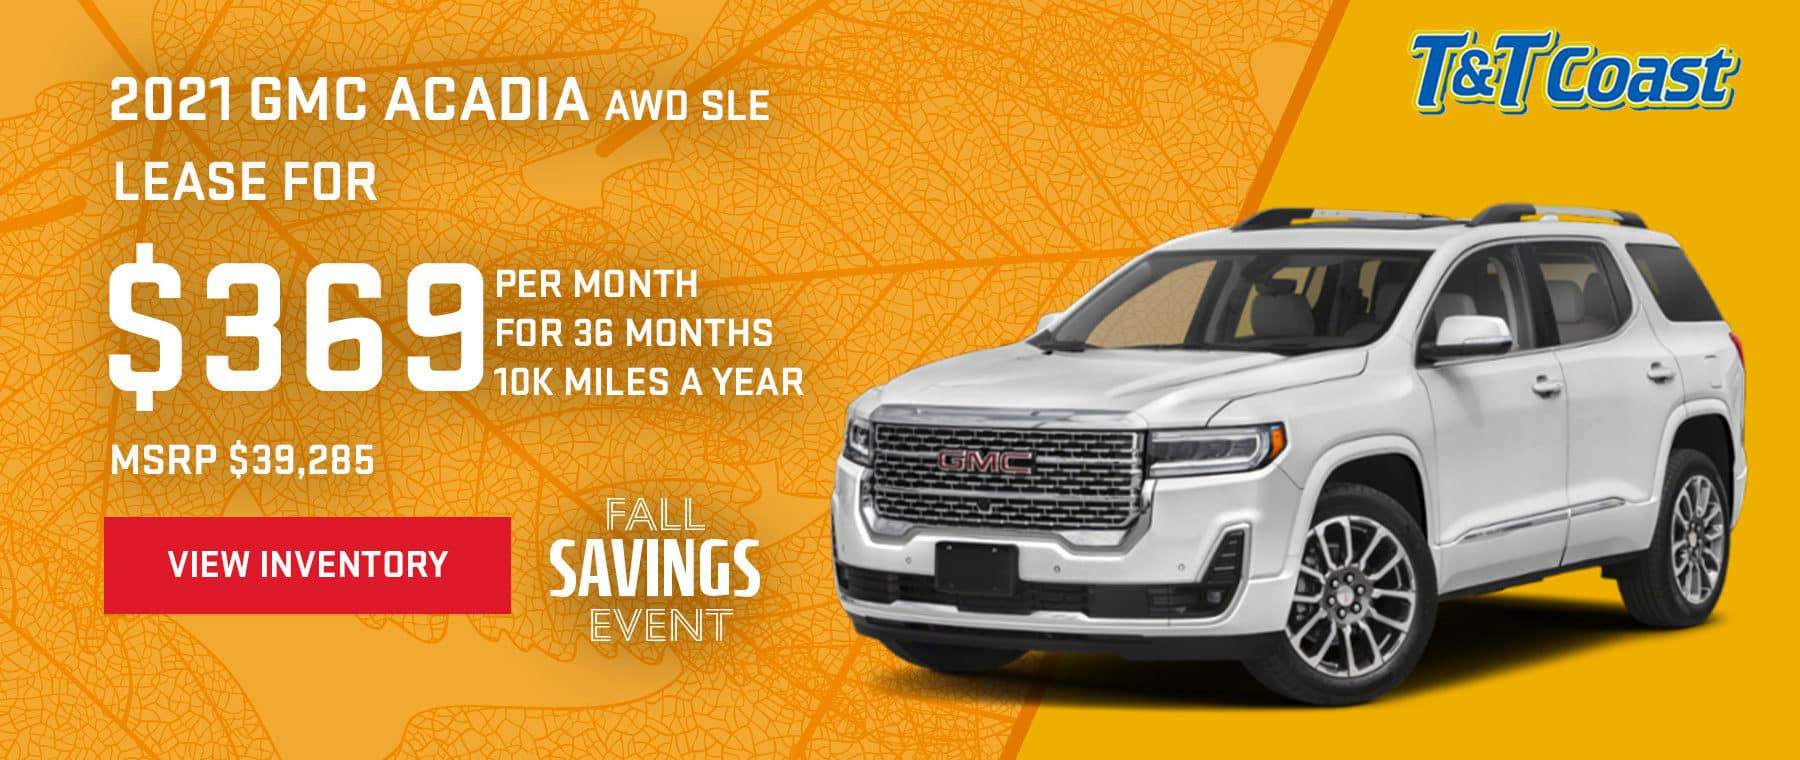 2021 GMC ACADIA AWD SLE MSRP $39,285 $369/MONTH LEASE! For 36 Months /10K Miles/Year